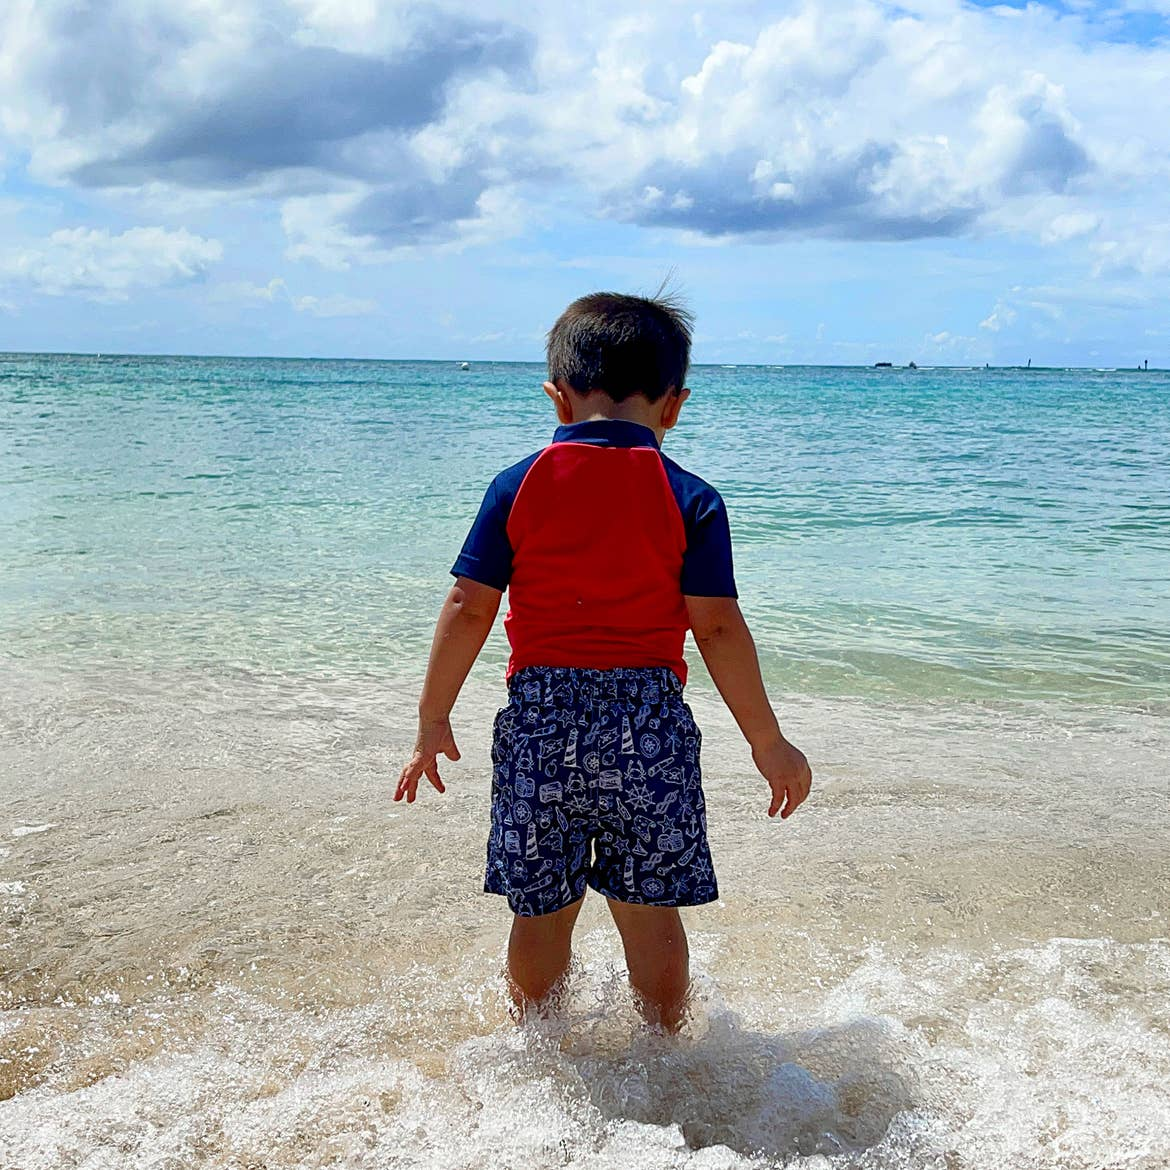 Featured Contributor, Danny Pitaluga's son, Joey, stands in the sand on the beach in swimwear as waves roll in.